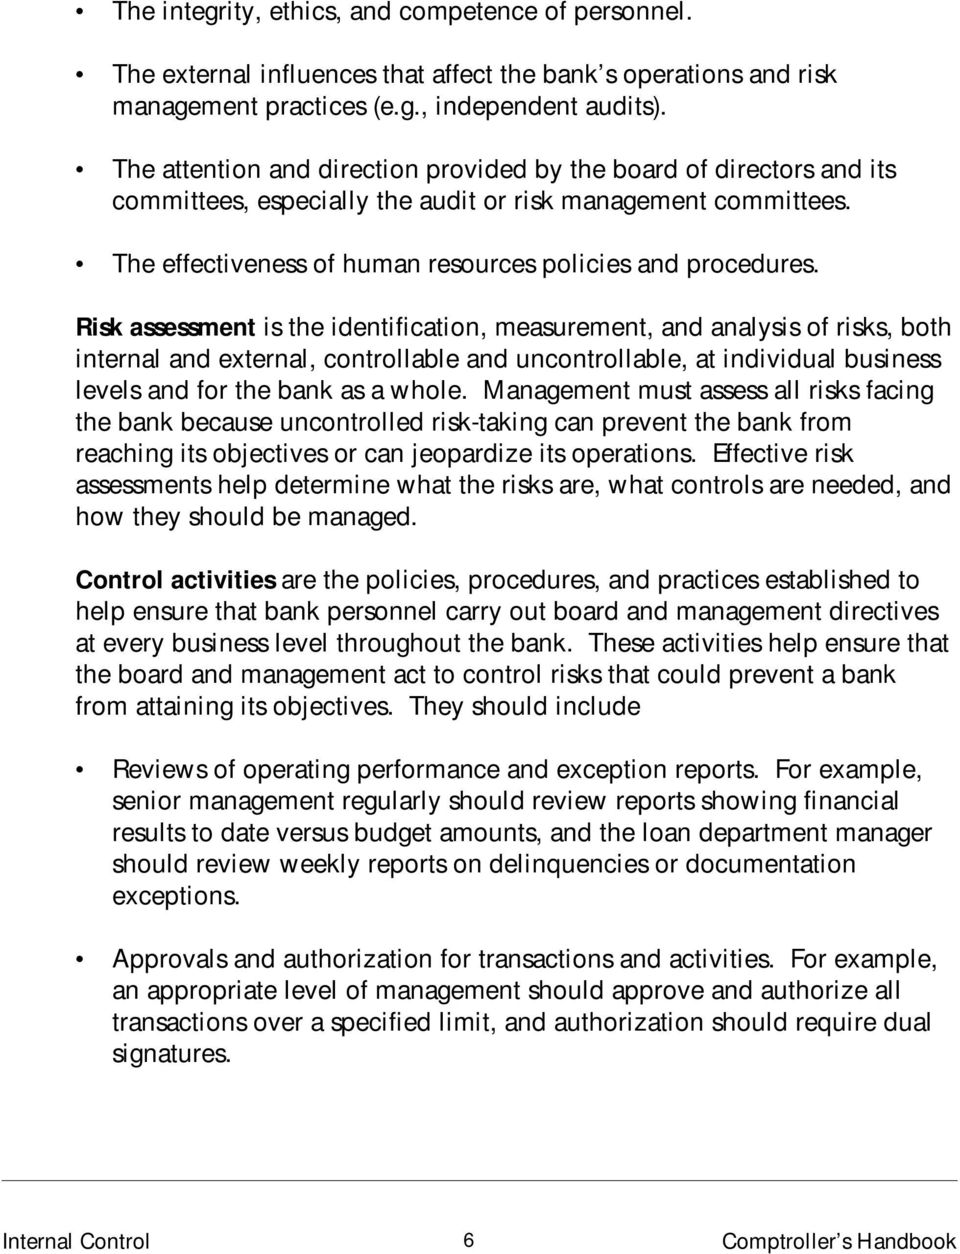 Risk assessment is the identification, measurement, and analysis of risks, both internal and external, controllable and uncontrollable, at individual business levels and for the bank as a whole.